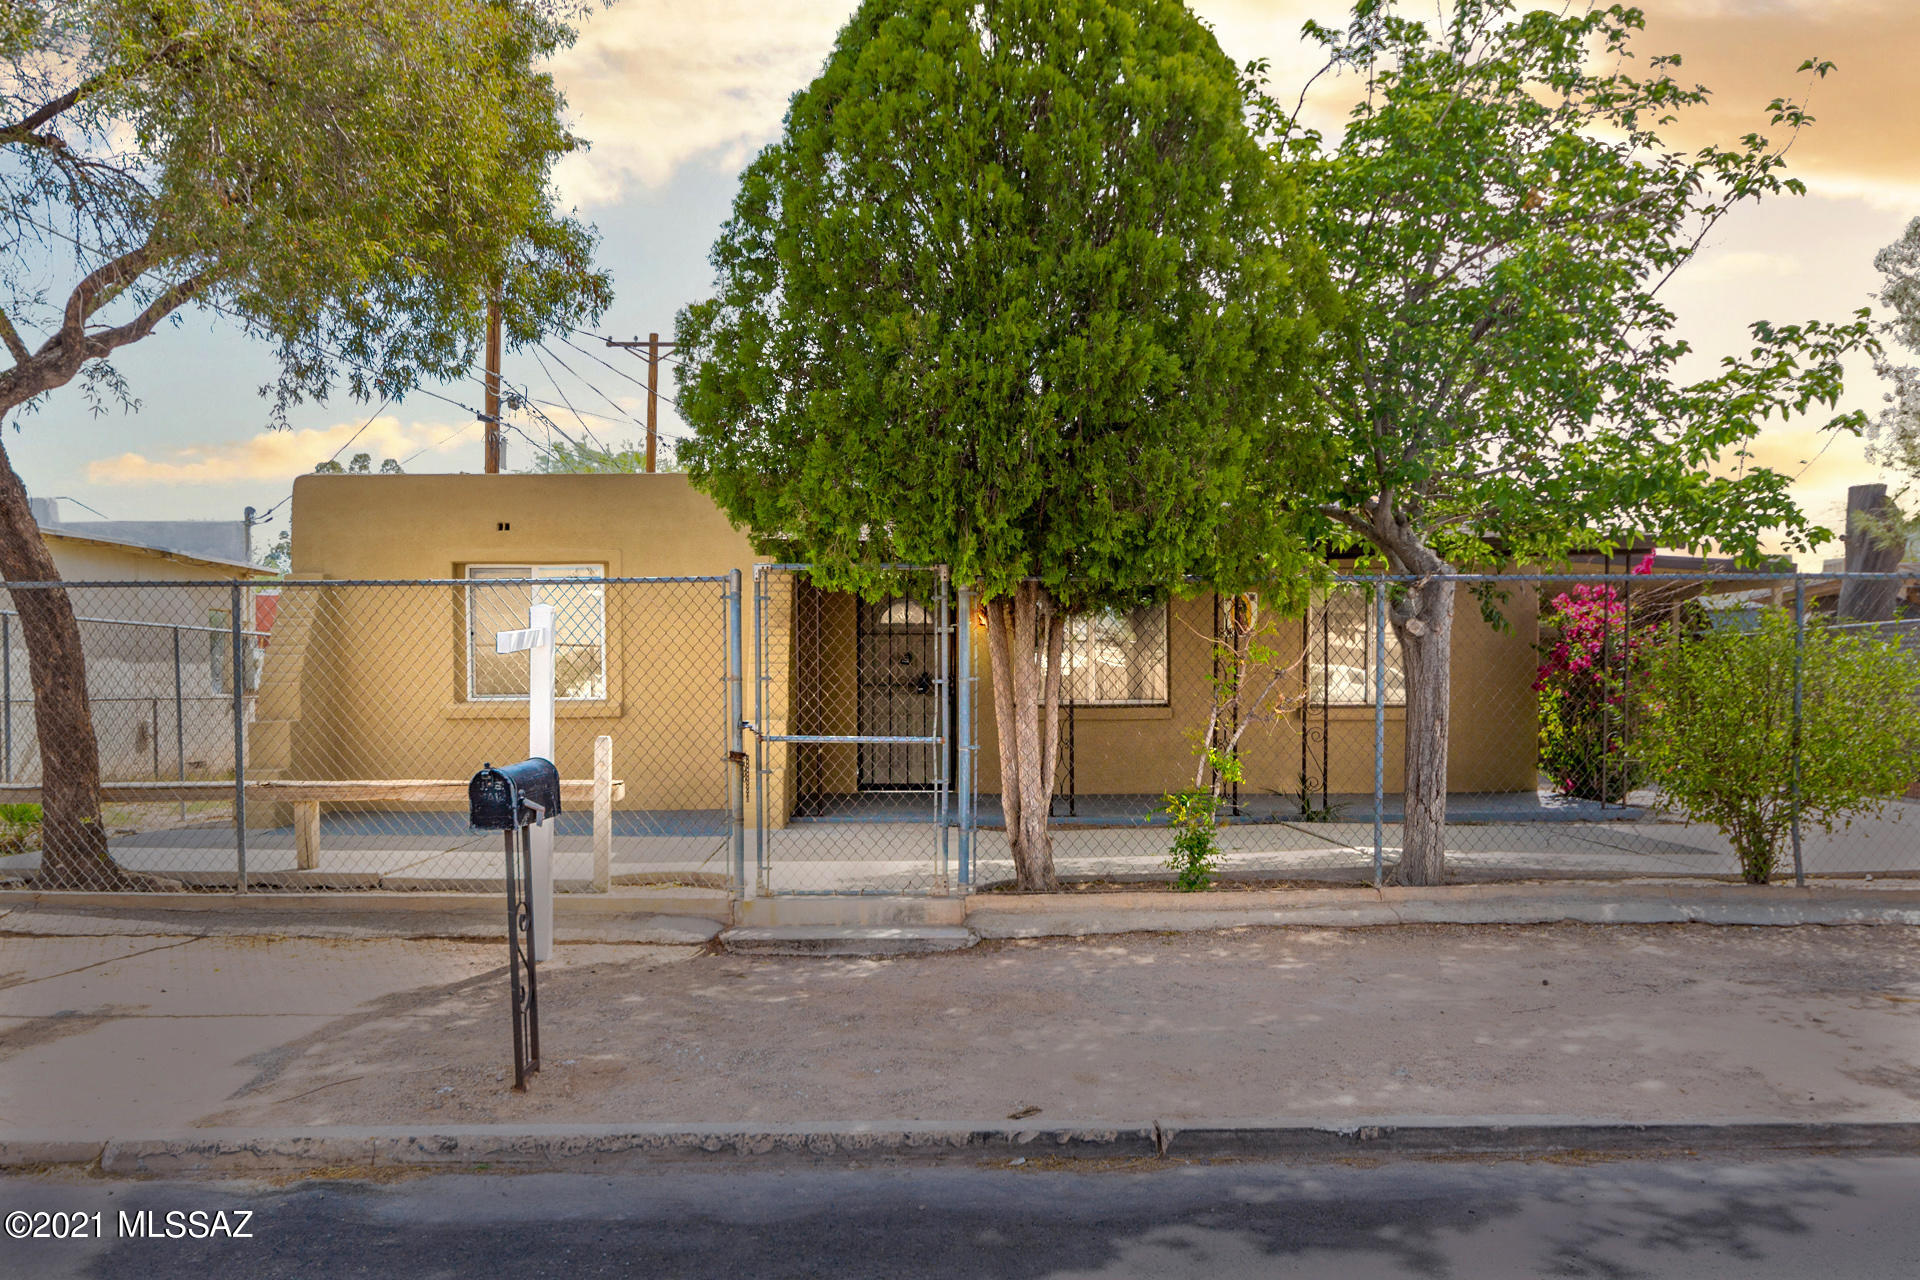 4219 S Lundy Avenue, Tucson, Arizona 85714, 3 Bedrooms Bedrooms, ,2 BathroomsBathrooms,Single Family,For Sale,4219 S Lundy Avenue,22110020